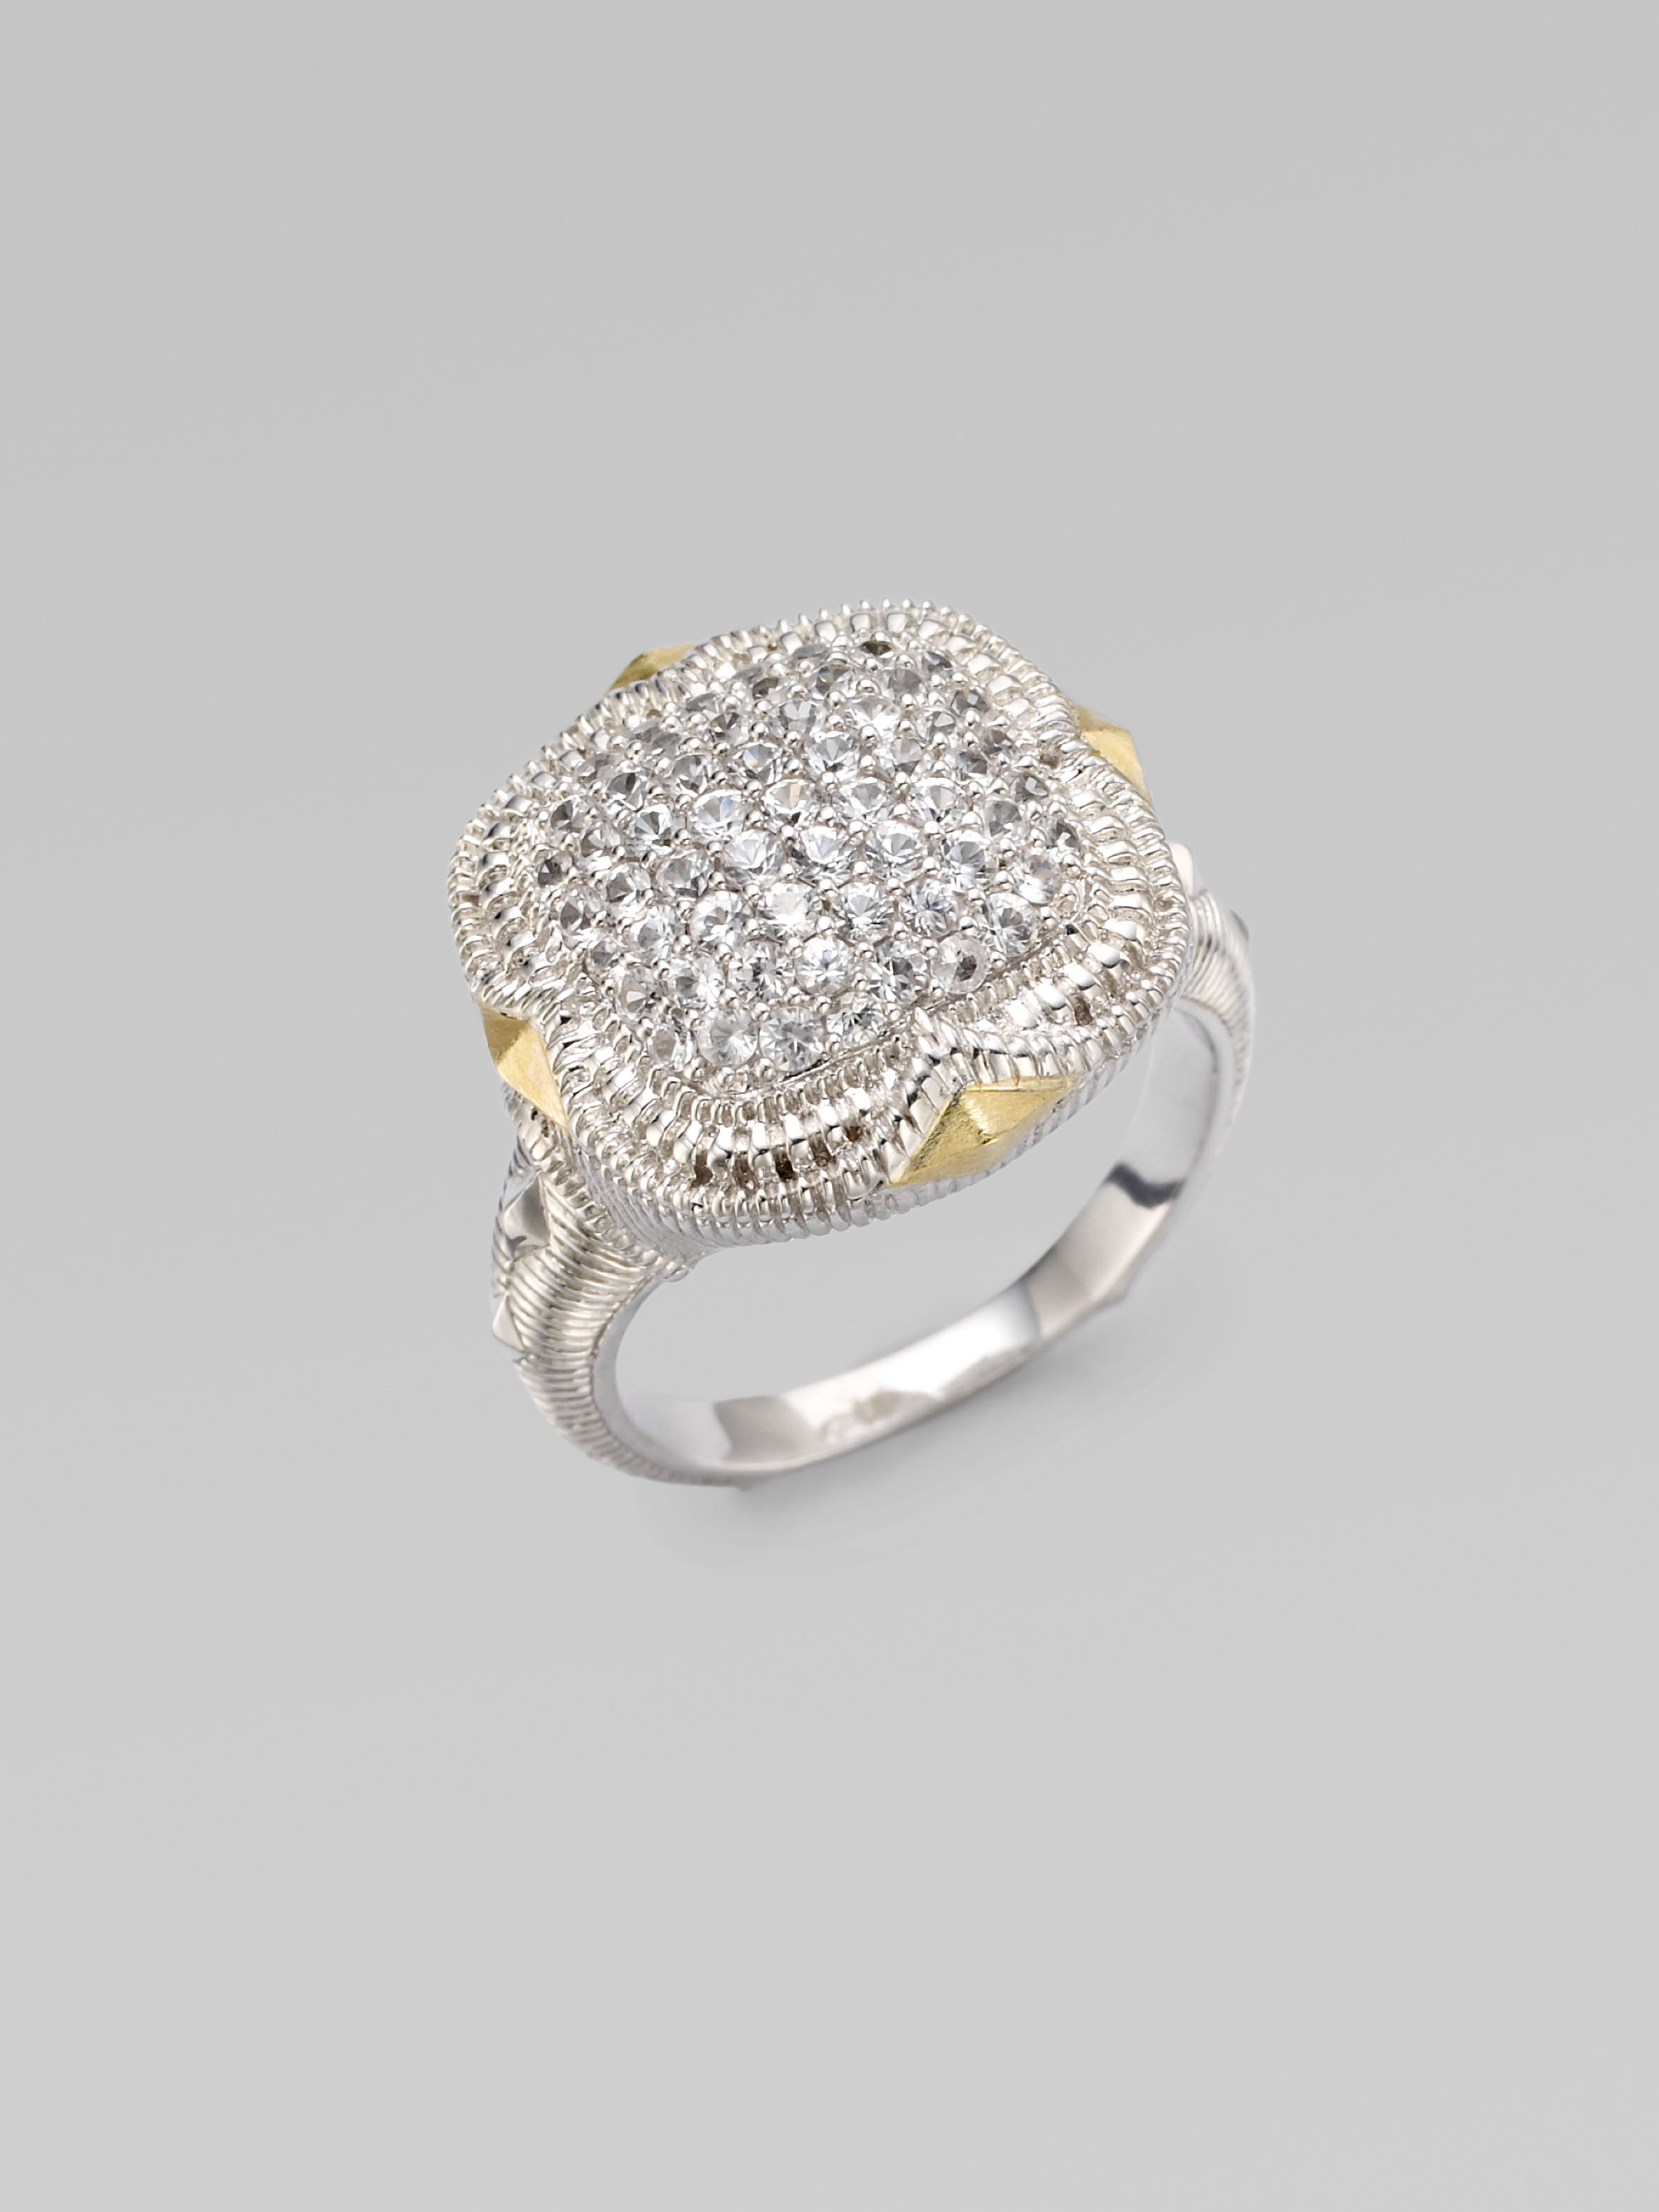 Lyst  Judith ripka White Sapphire Sterling Silver Cushion Stone Ring in White